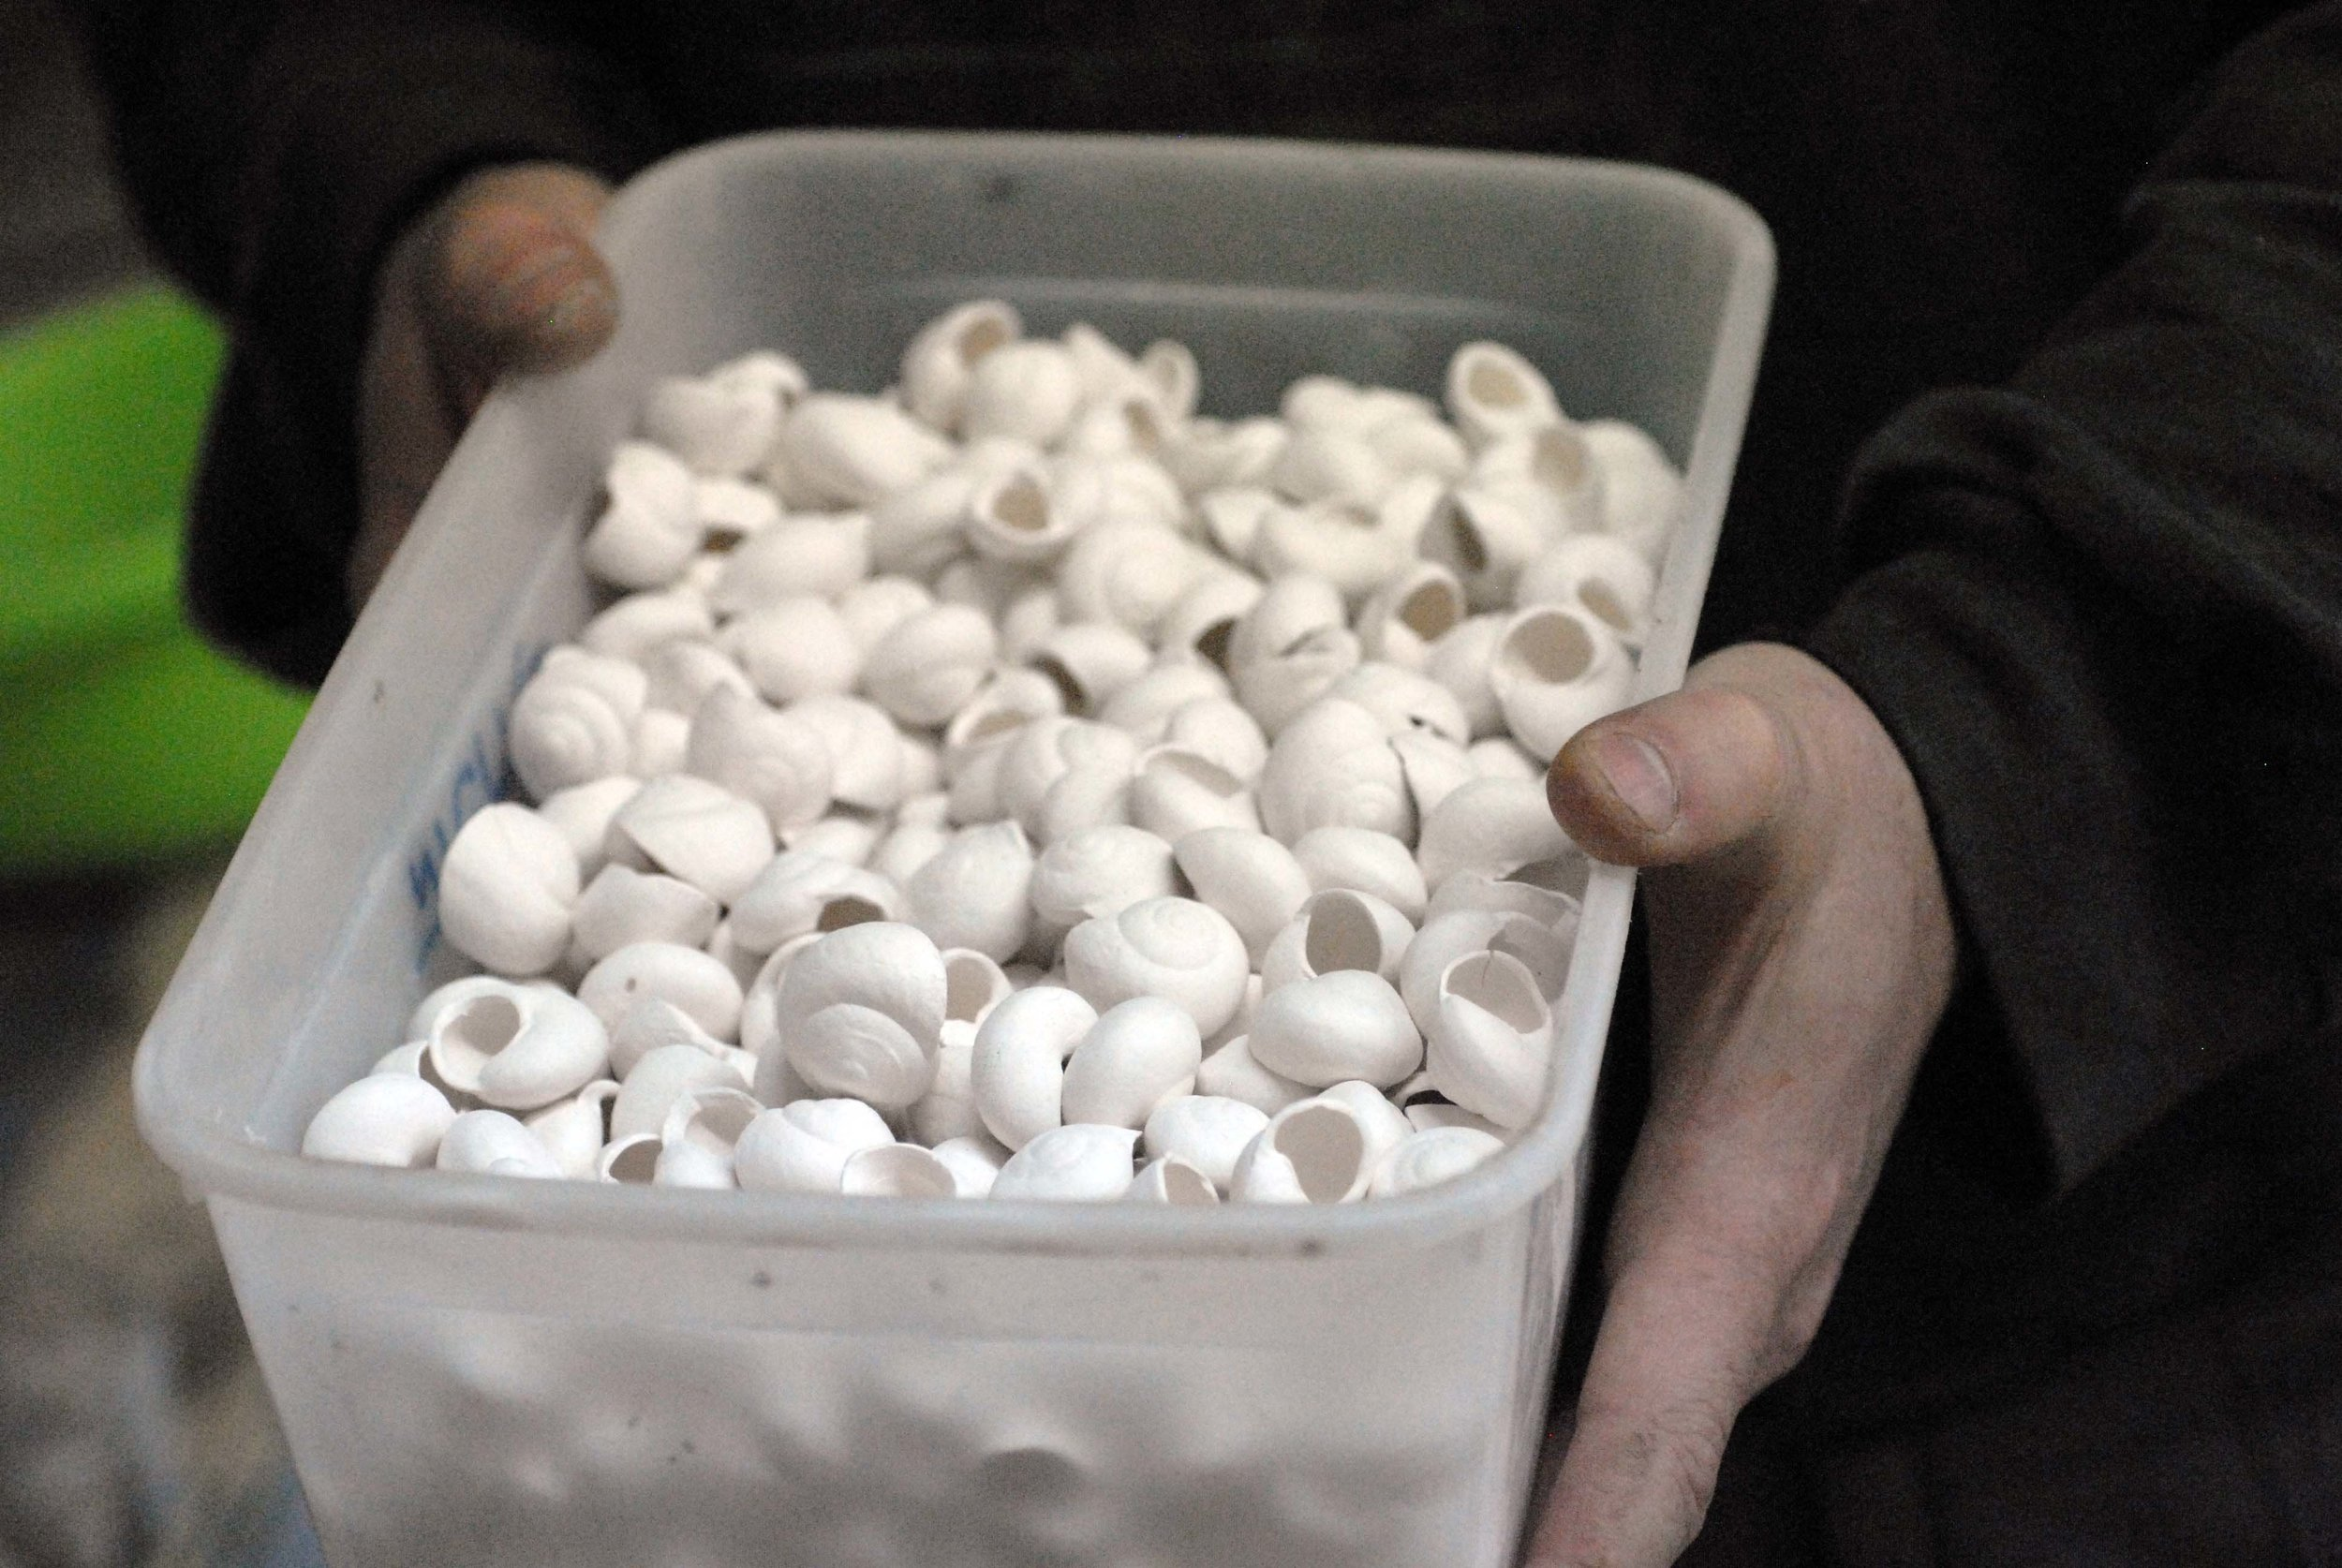 Porcelain snails before being hand-painted, fired, glazed, and fired again by the artist. Photo: Katia Rabey